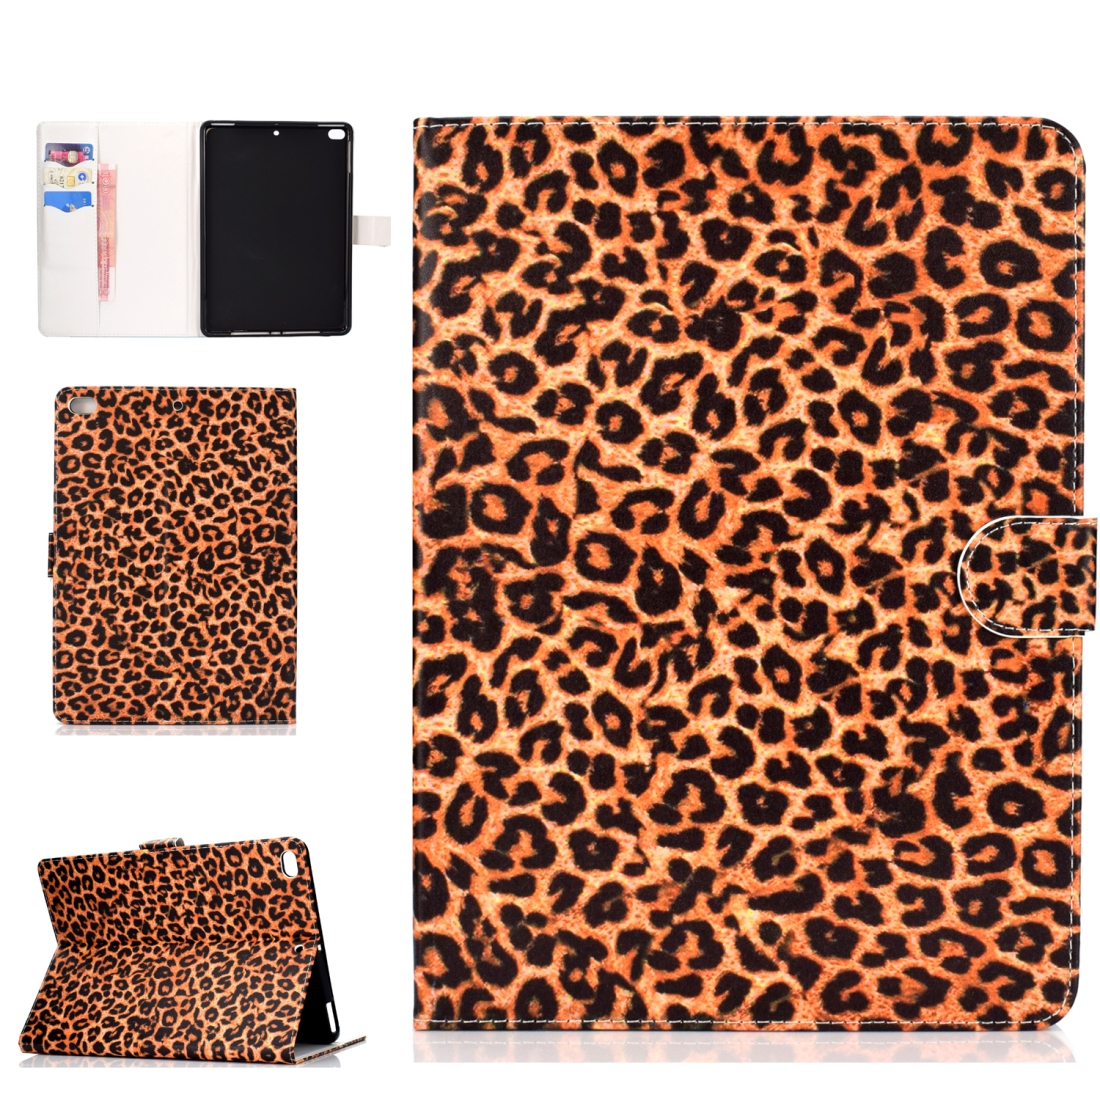 iPad 5th Generation Case Fits iPad 5,6,8, Stylish Leather Design & Auto Sleep Function (Leopard)